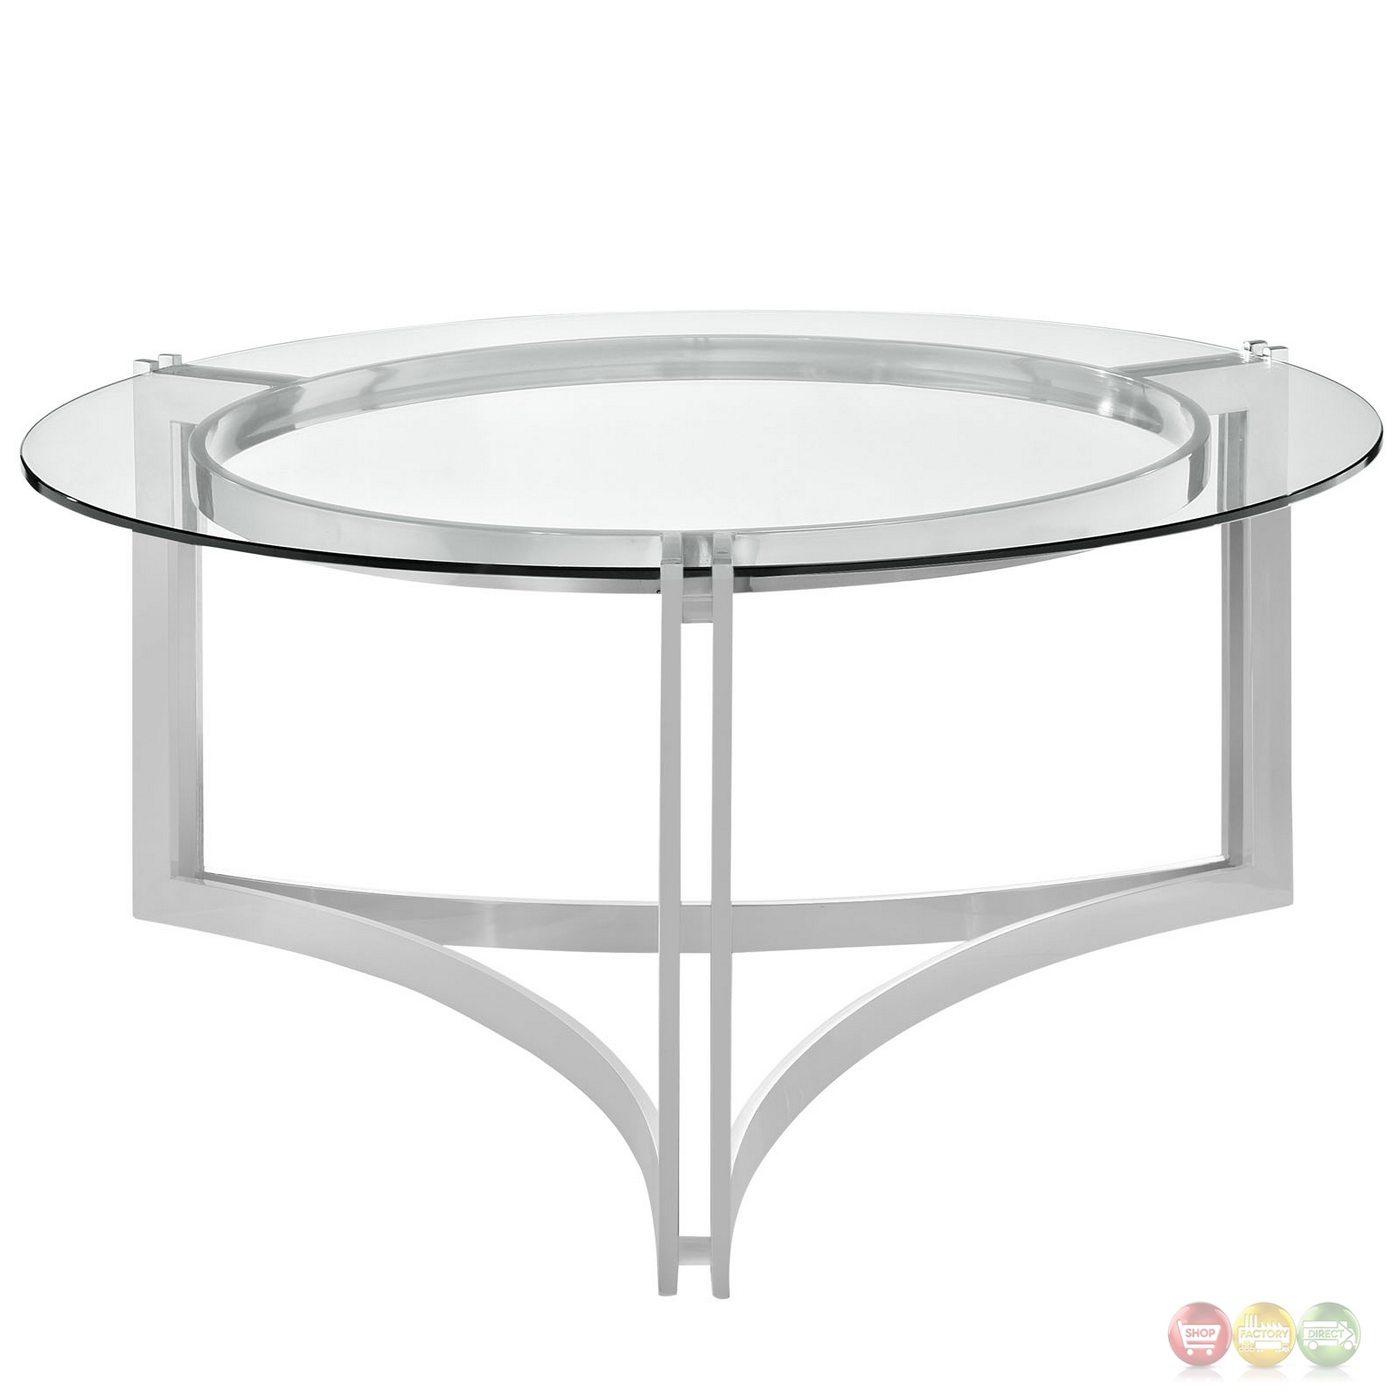 Signet modern stainless steel coffee table w round for Tempered glass coffee table